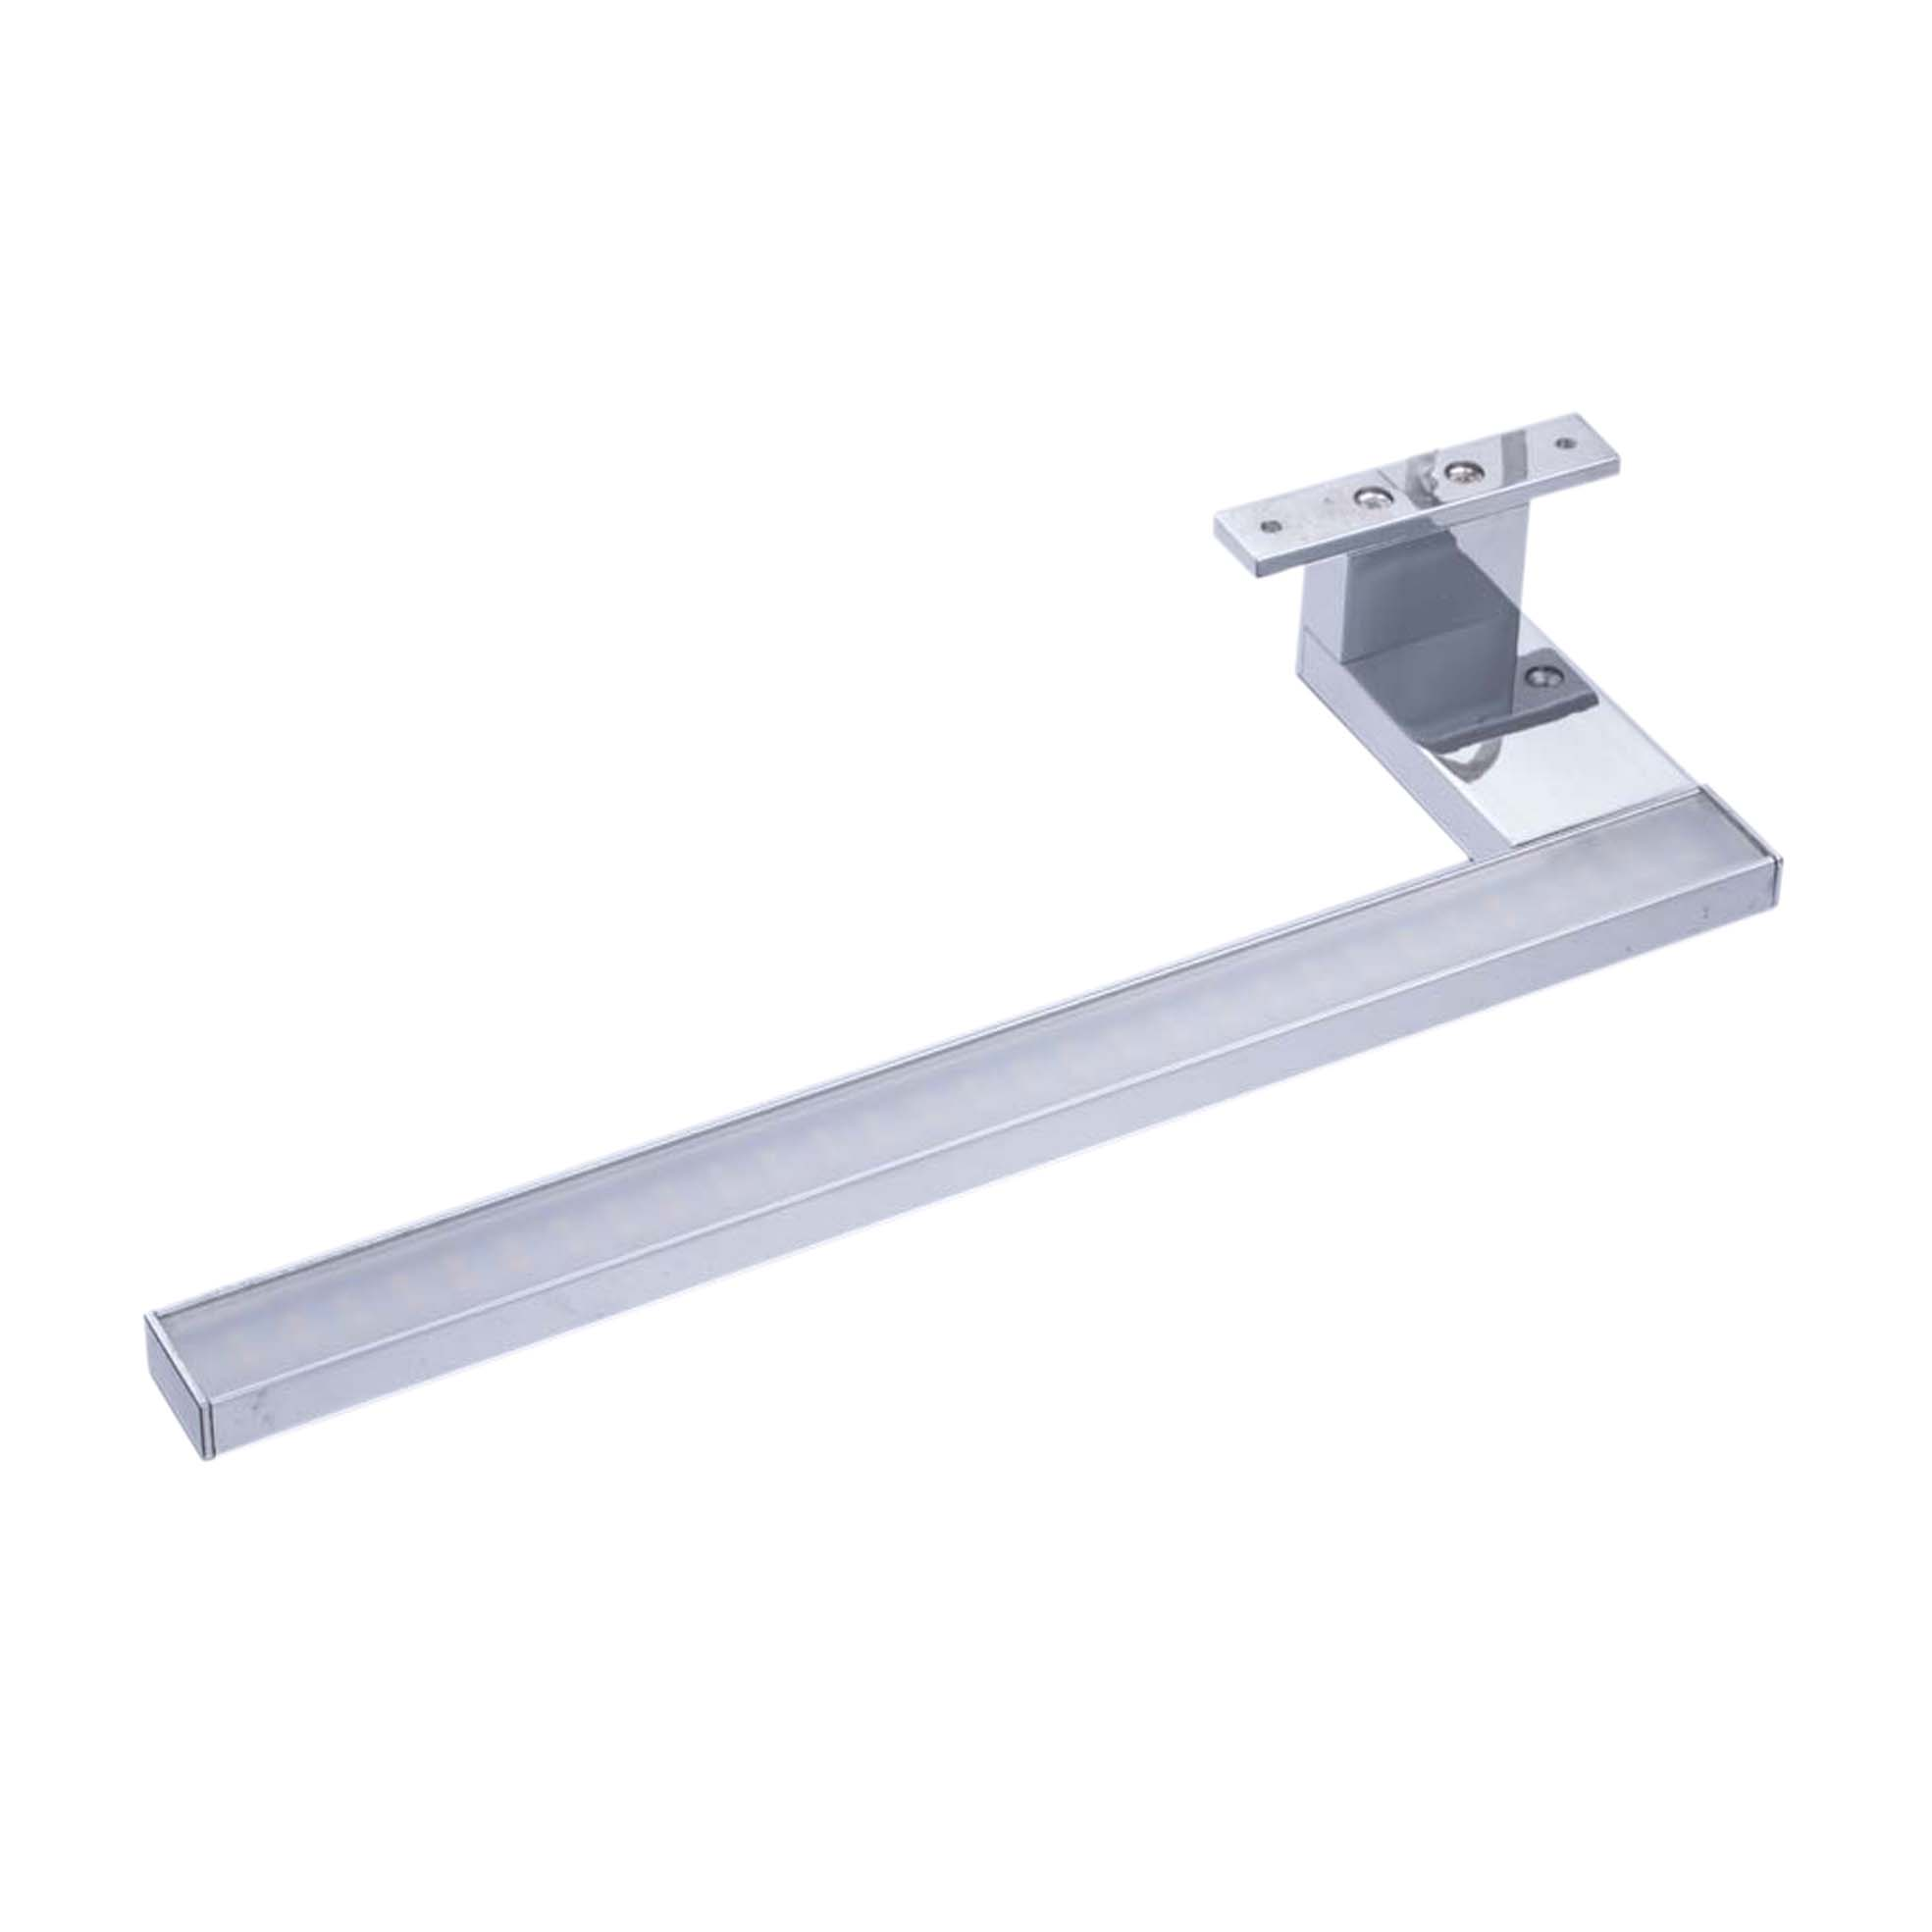 Led lámpara de pared 5W pintura de Baño Lámpara de pared con led, estilo moderno